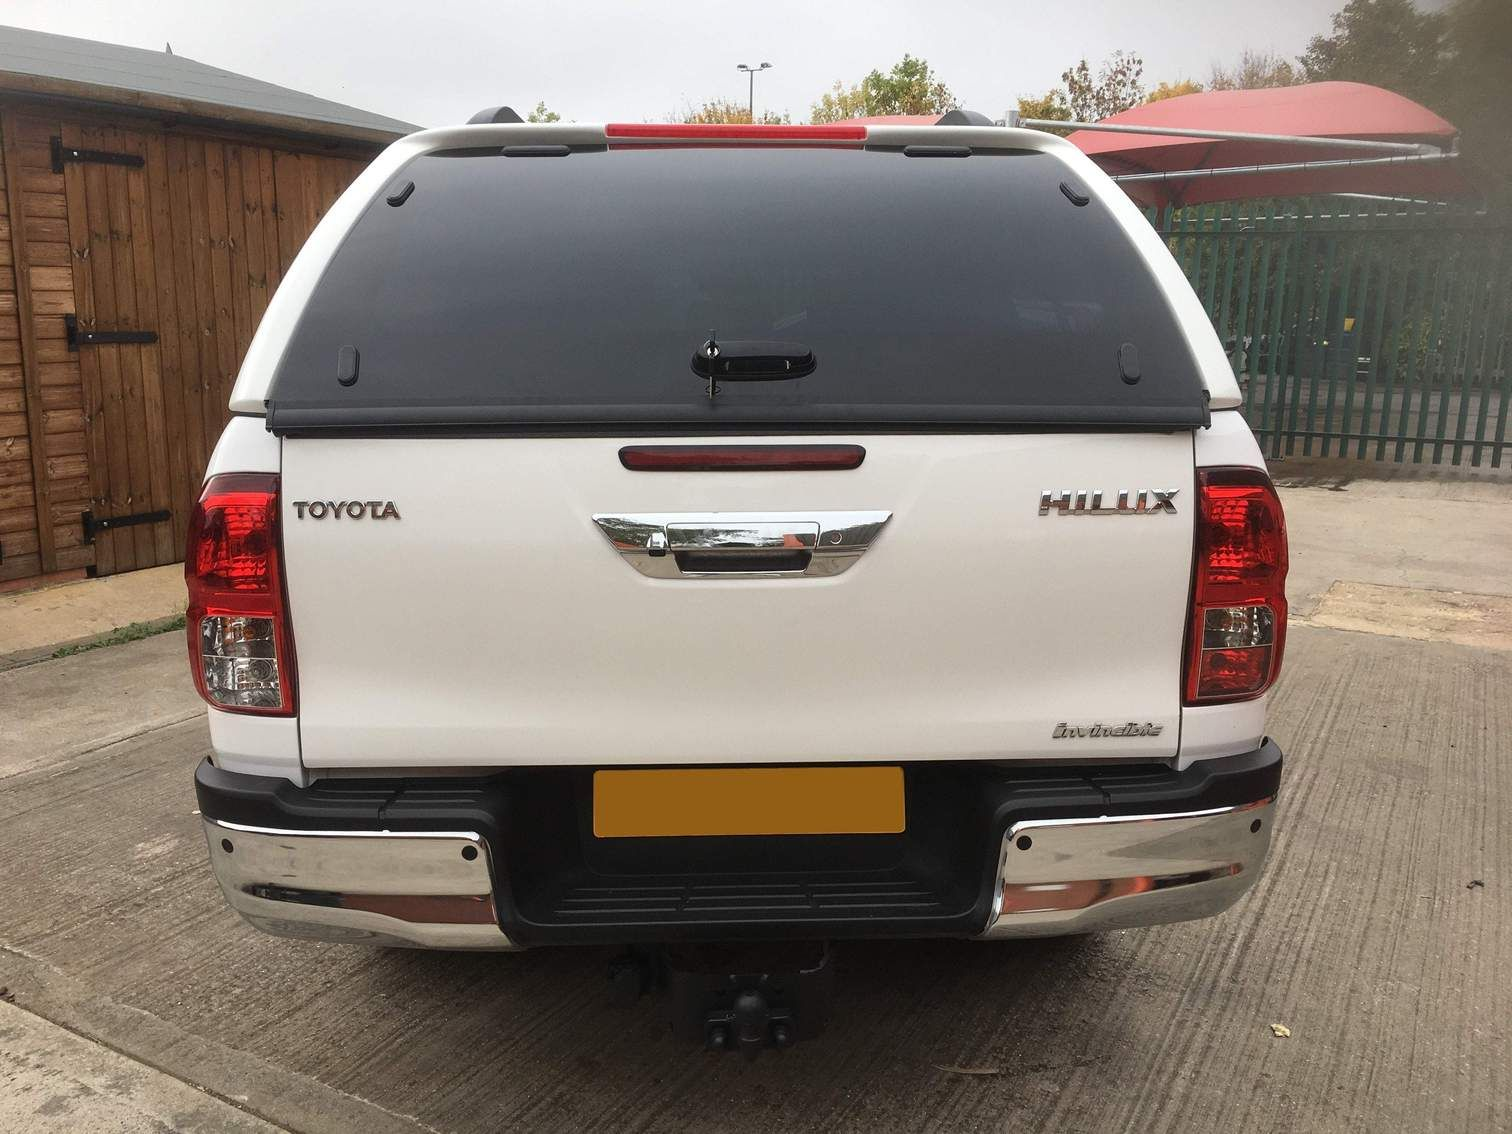 Toyota Hilux 2016On Lupo S1 Leisure Hardtop Canopy